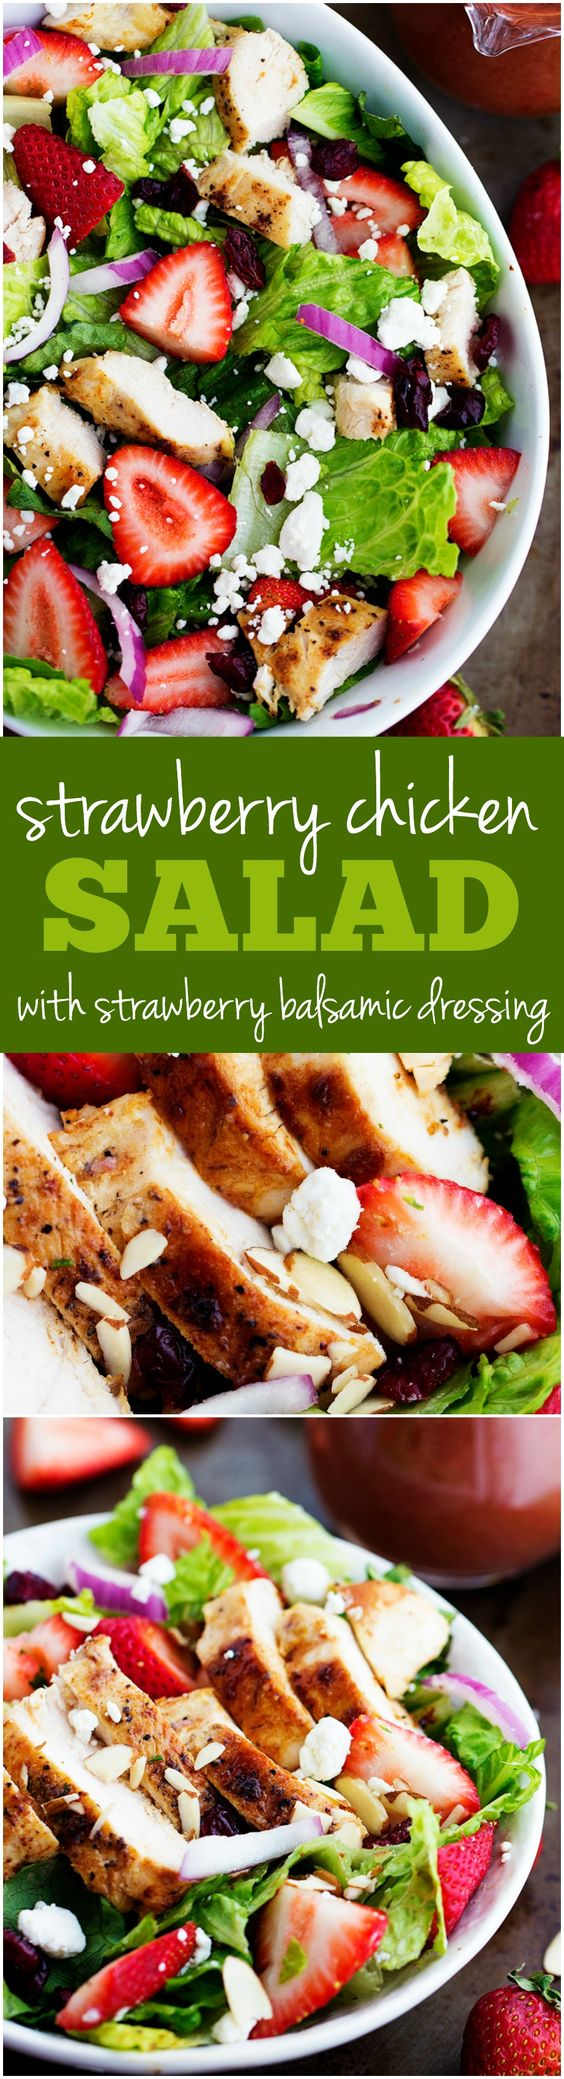 This Strawberry Chicken salad is full of fresh strawberries and topped with a strawberry balsamic dressing. Perfect for summer!: